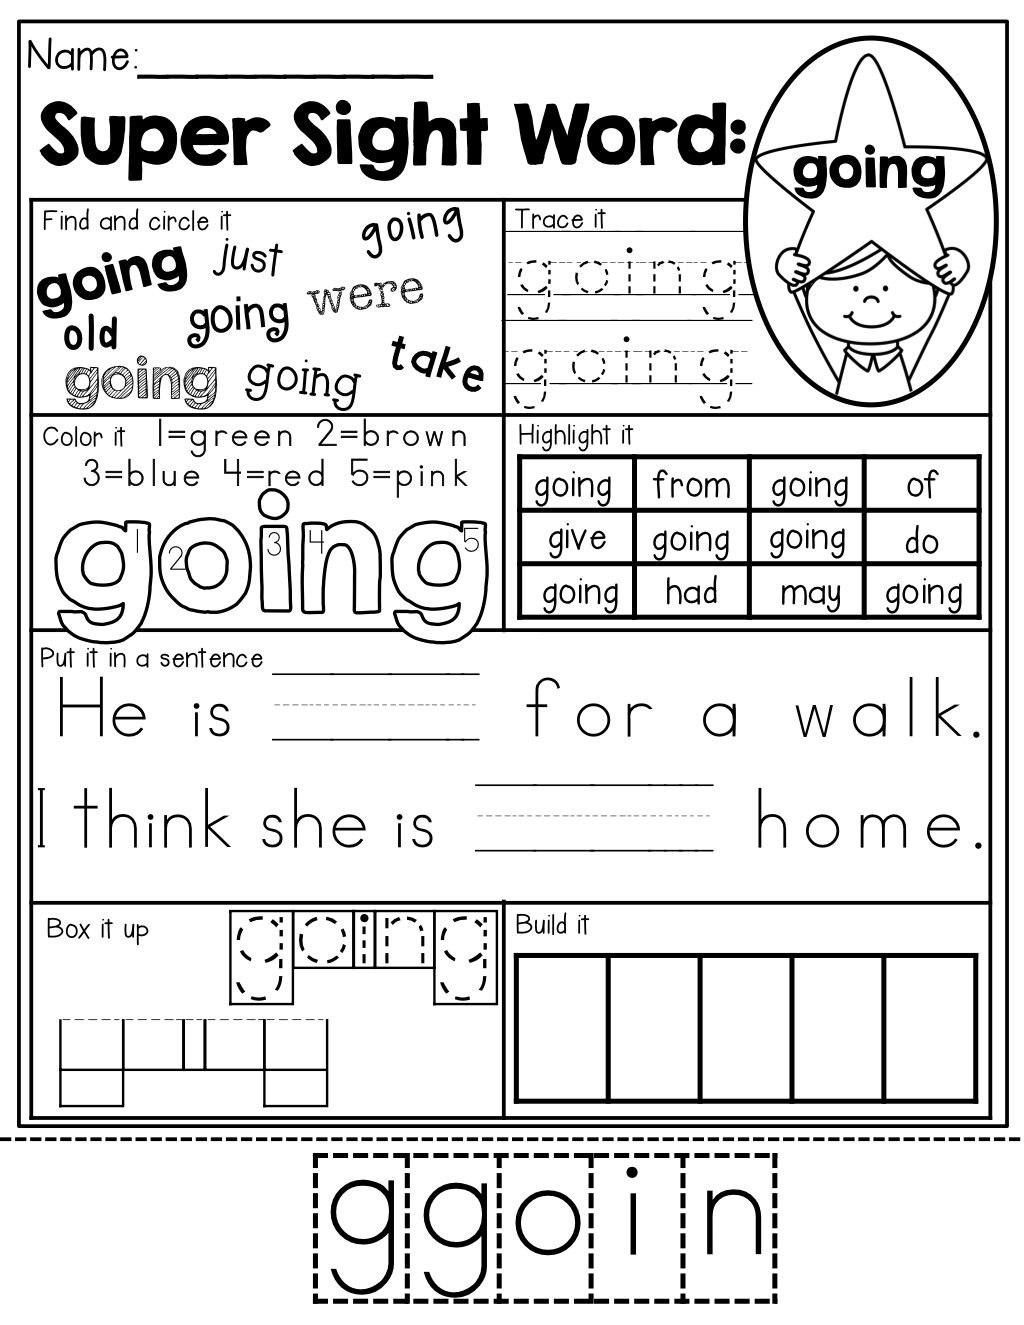 Sight Word Pages So Many Different Ways To Master Each Sight Word